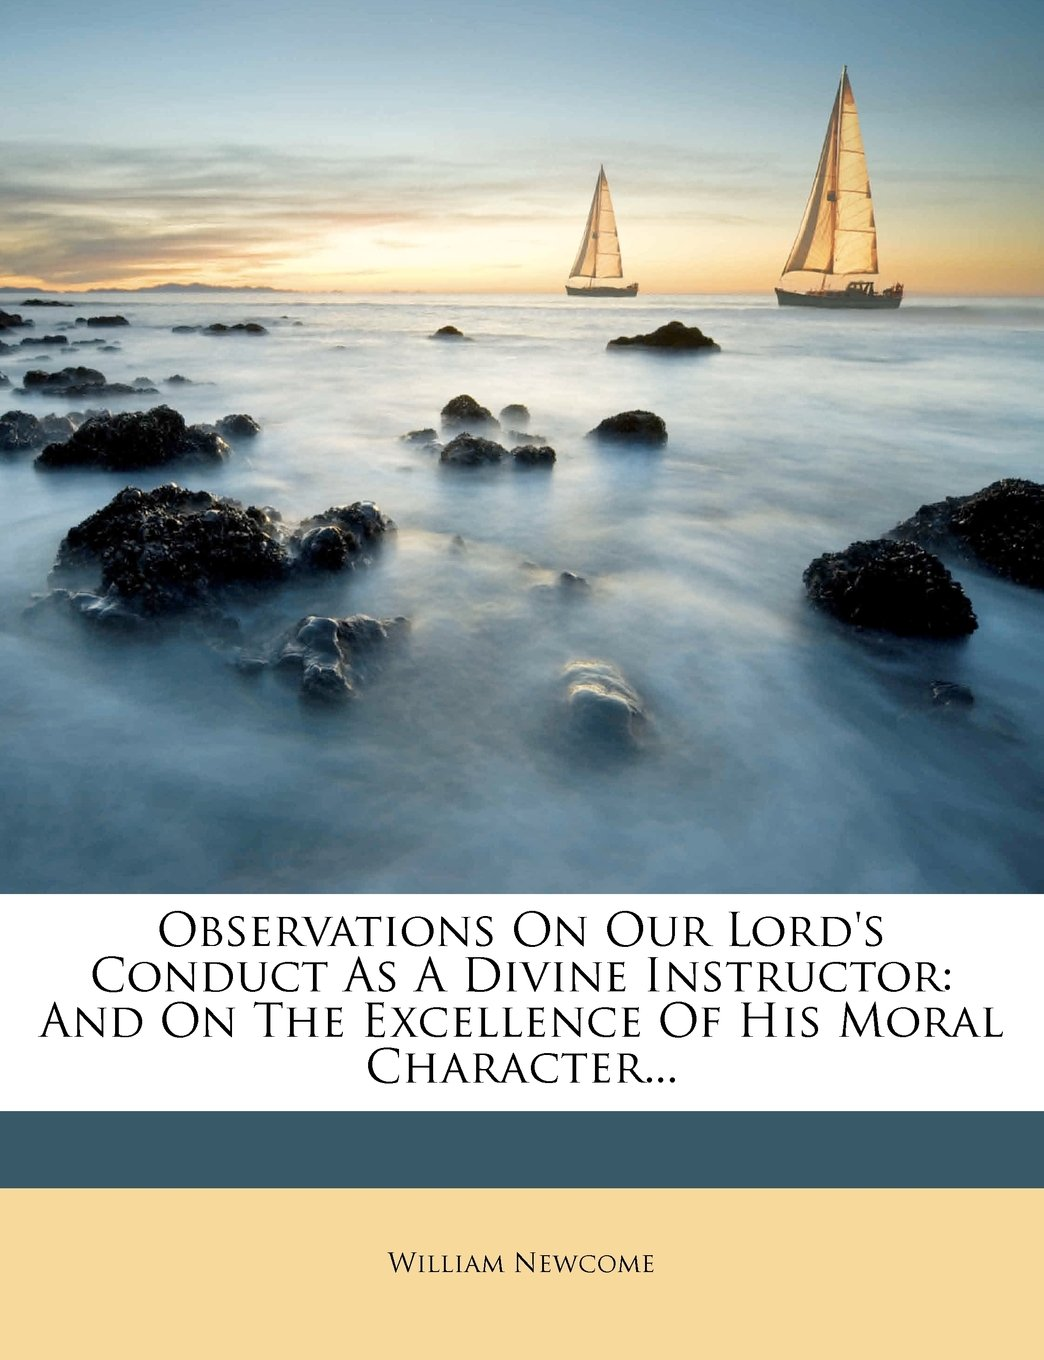 Read Online Observations On Our Lord's Conduct As A Divine Instructor: And On The Excellence Of His Moral Character... PDF